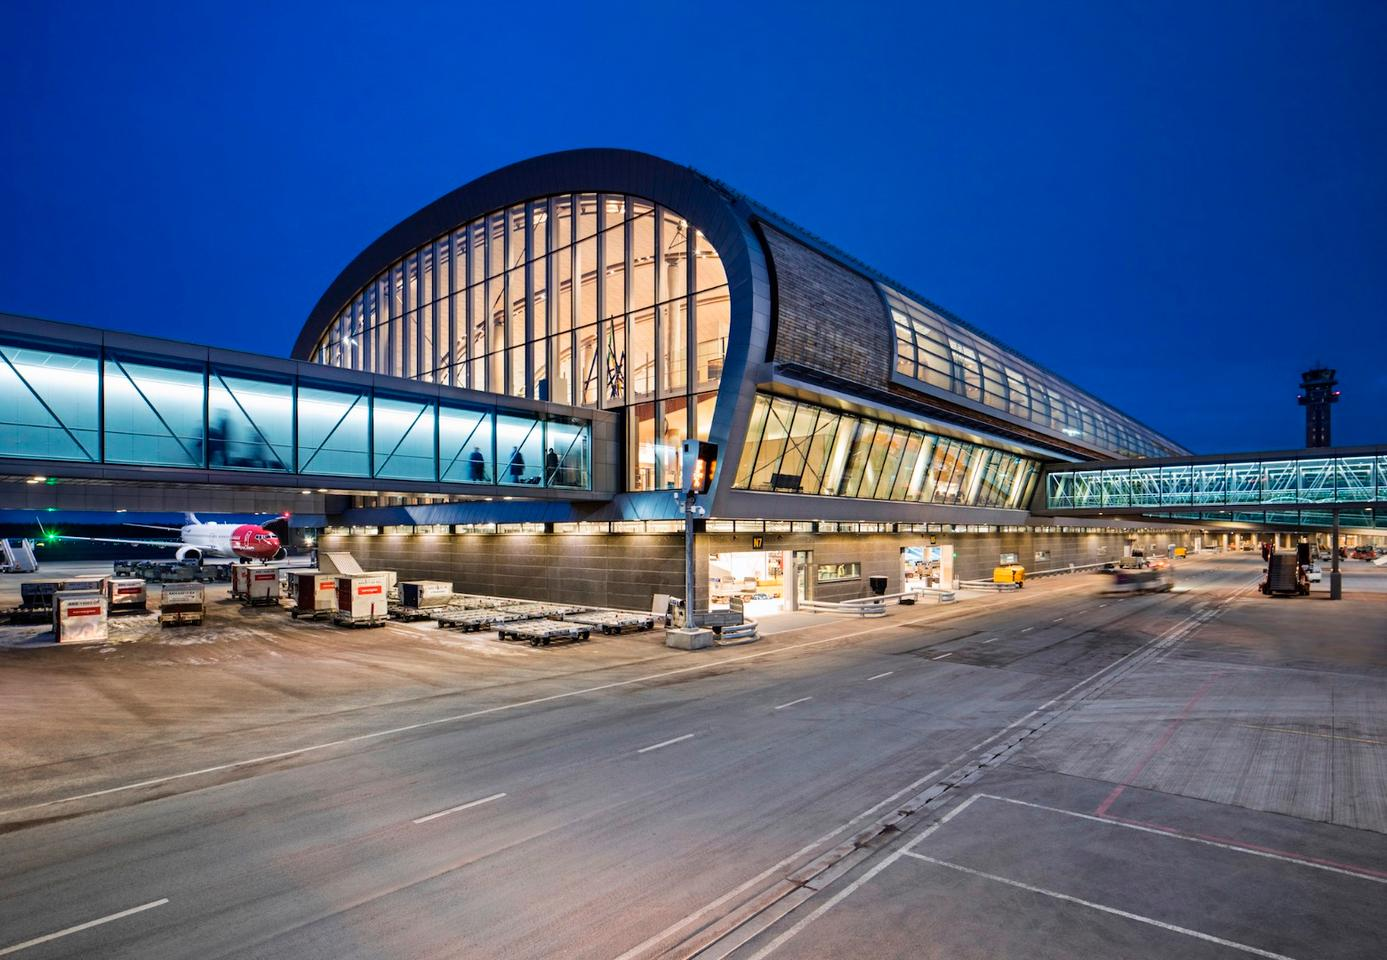 Nordic – Office of Architecture designed Oslo Airport back in 1998 and the new extension officially opened this week